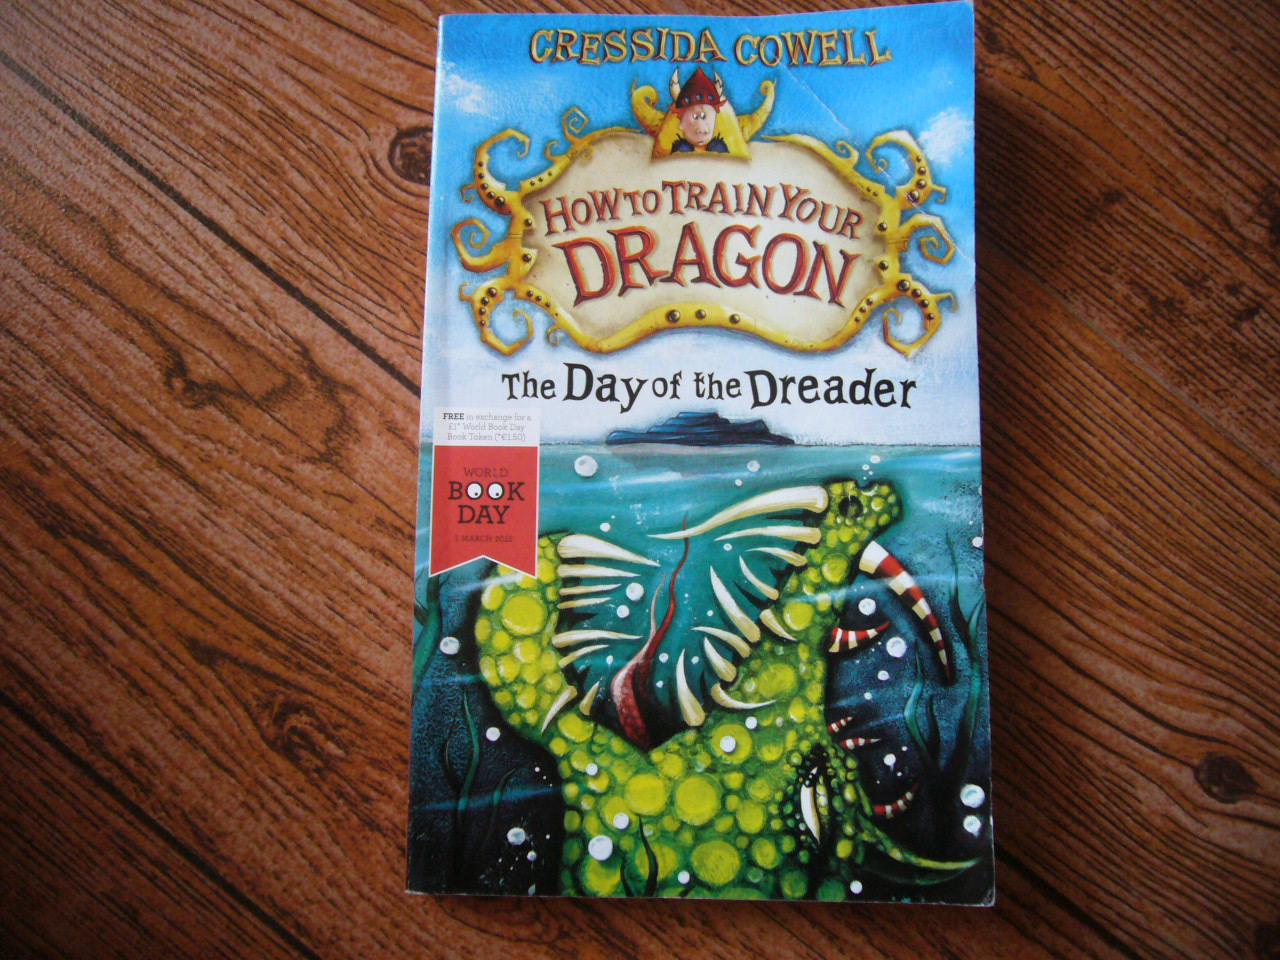 How to Train Your Dragon: The Day of the Dreader (ปก World Book Day)